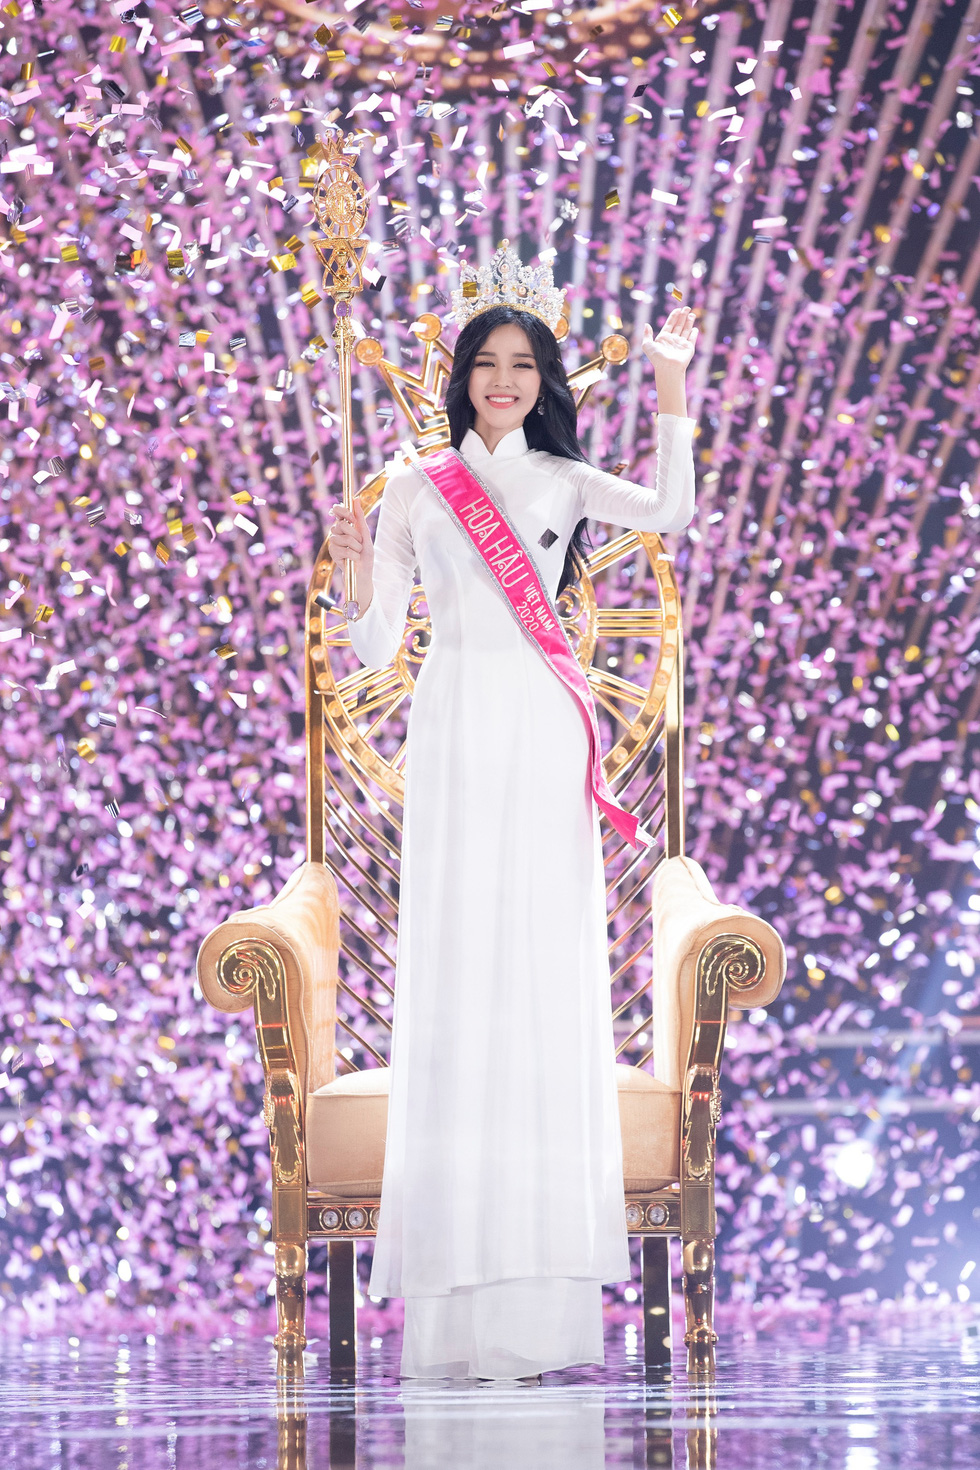 This supplied photo shows newly-crowned Miss Vietnam Do Thi Ha waves to the audience during the closing part of the Miss Vietnam 2020 beauty pageant's final in Ho Chi Minh City, November 20, 2020.